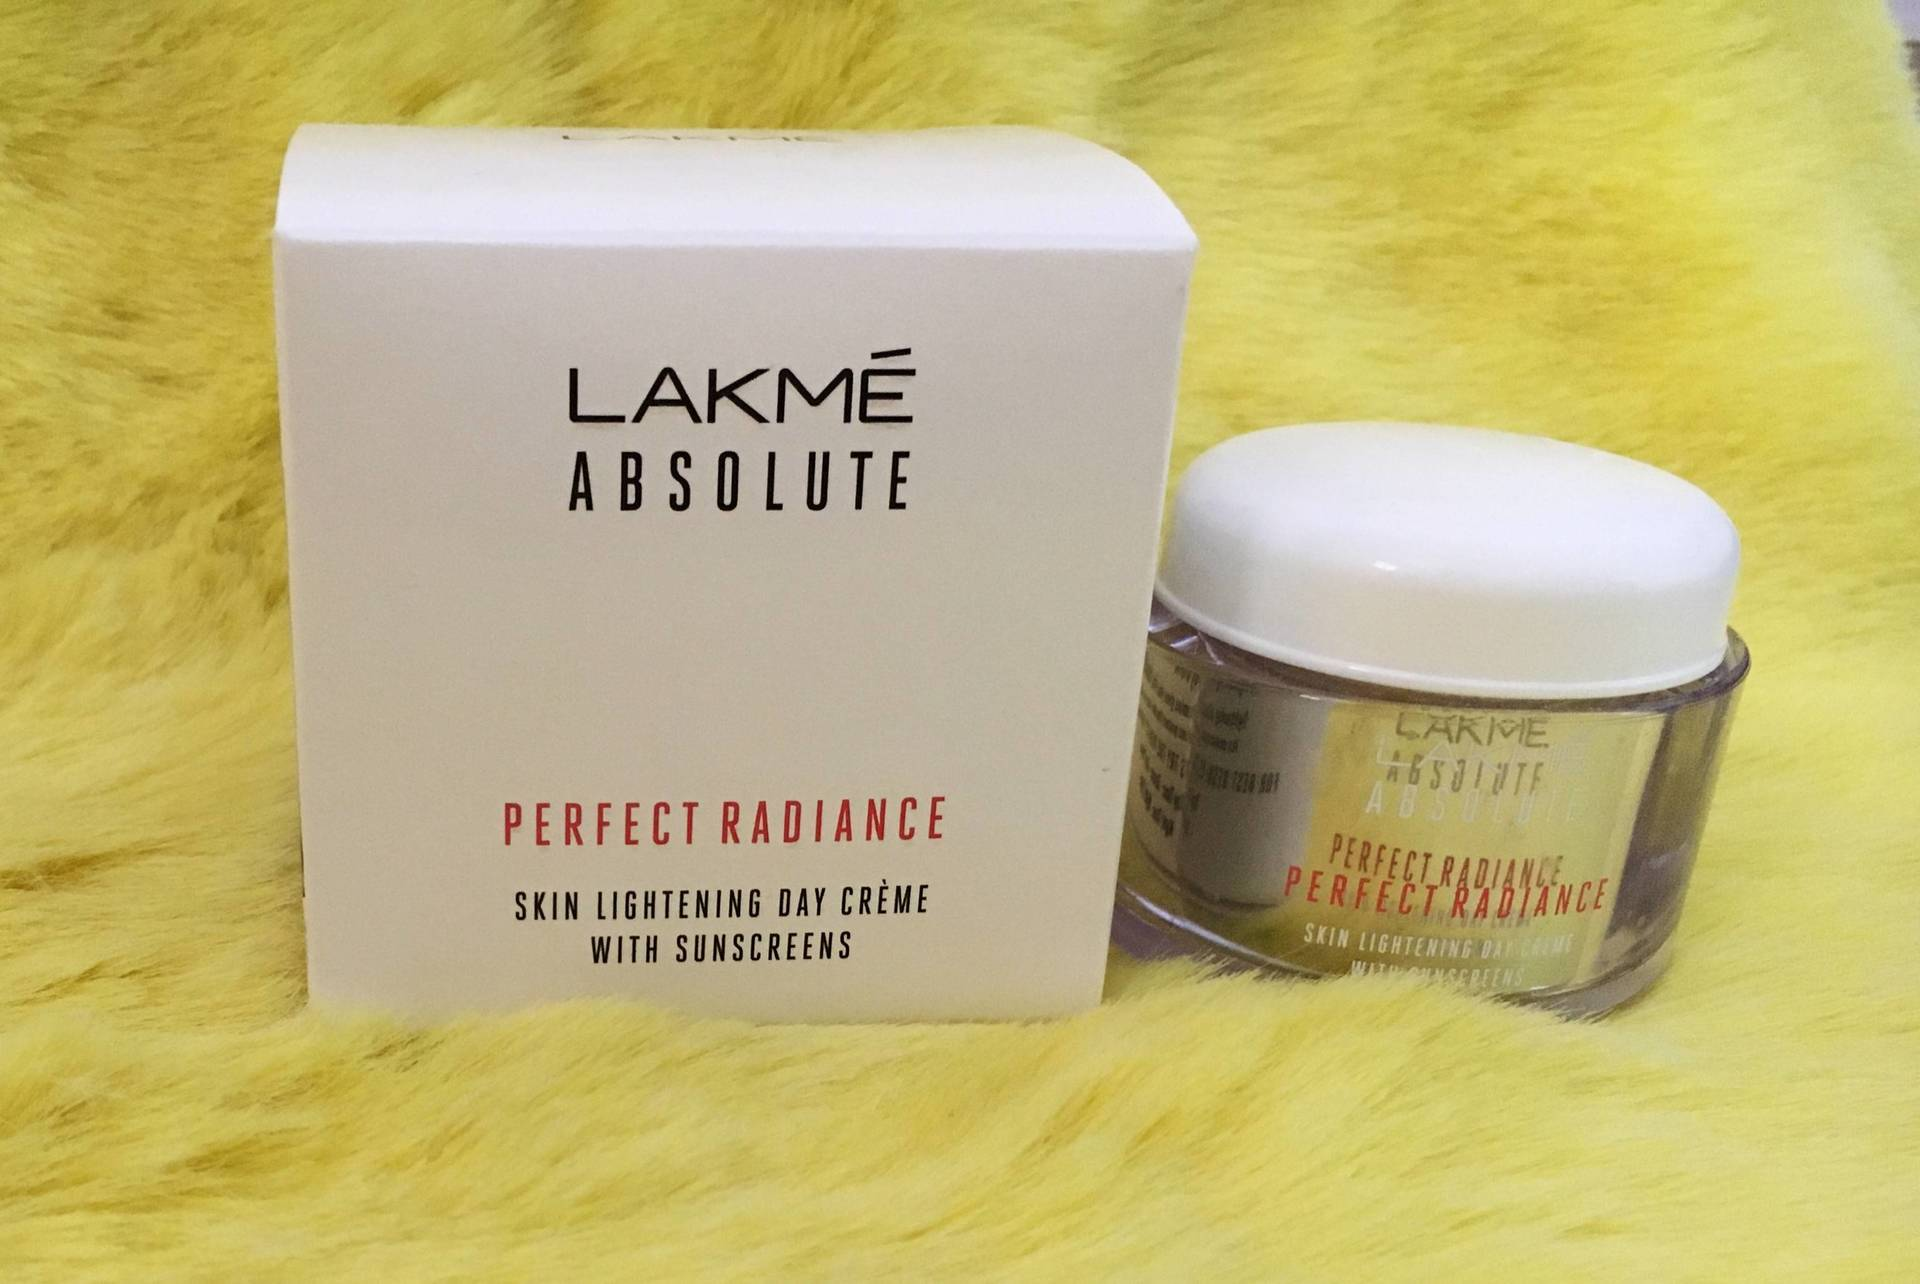 Lakmé Absolute Perfect Radiance Skin Lightening Day Crème: Review, Price  image